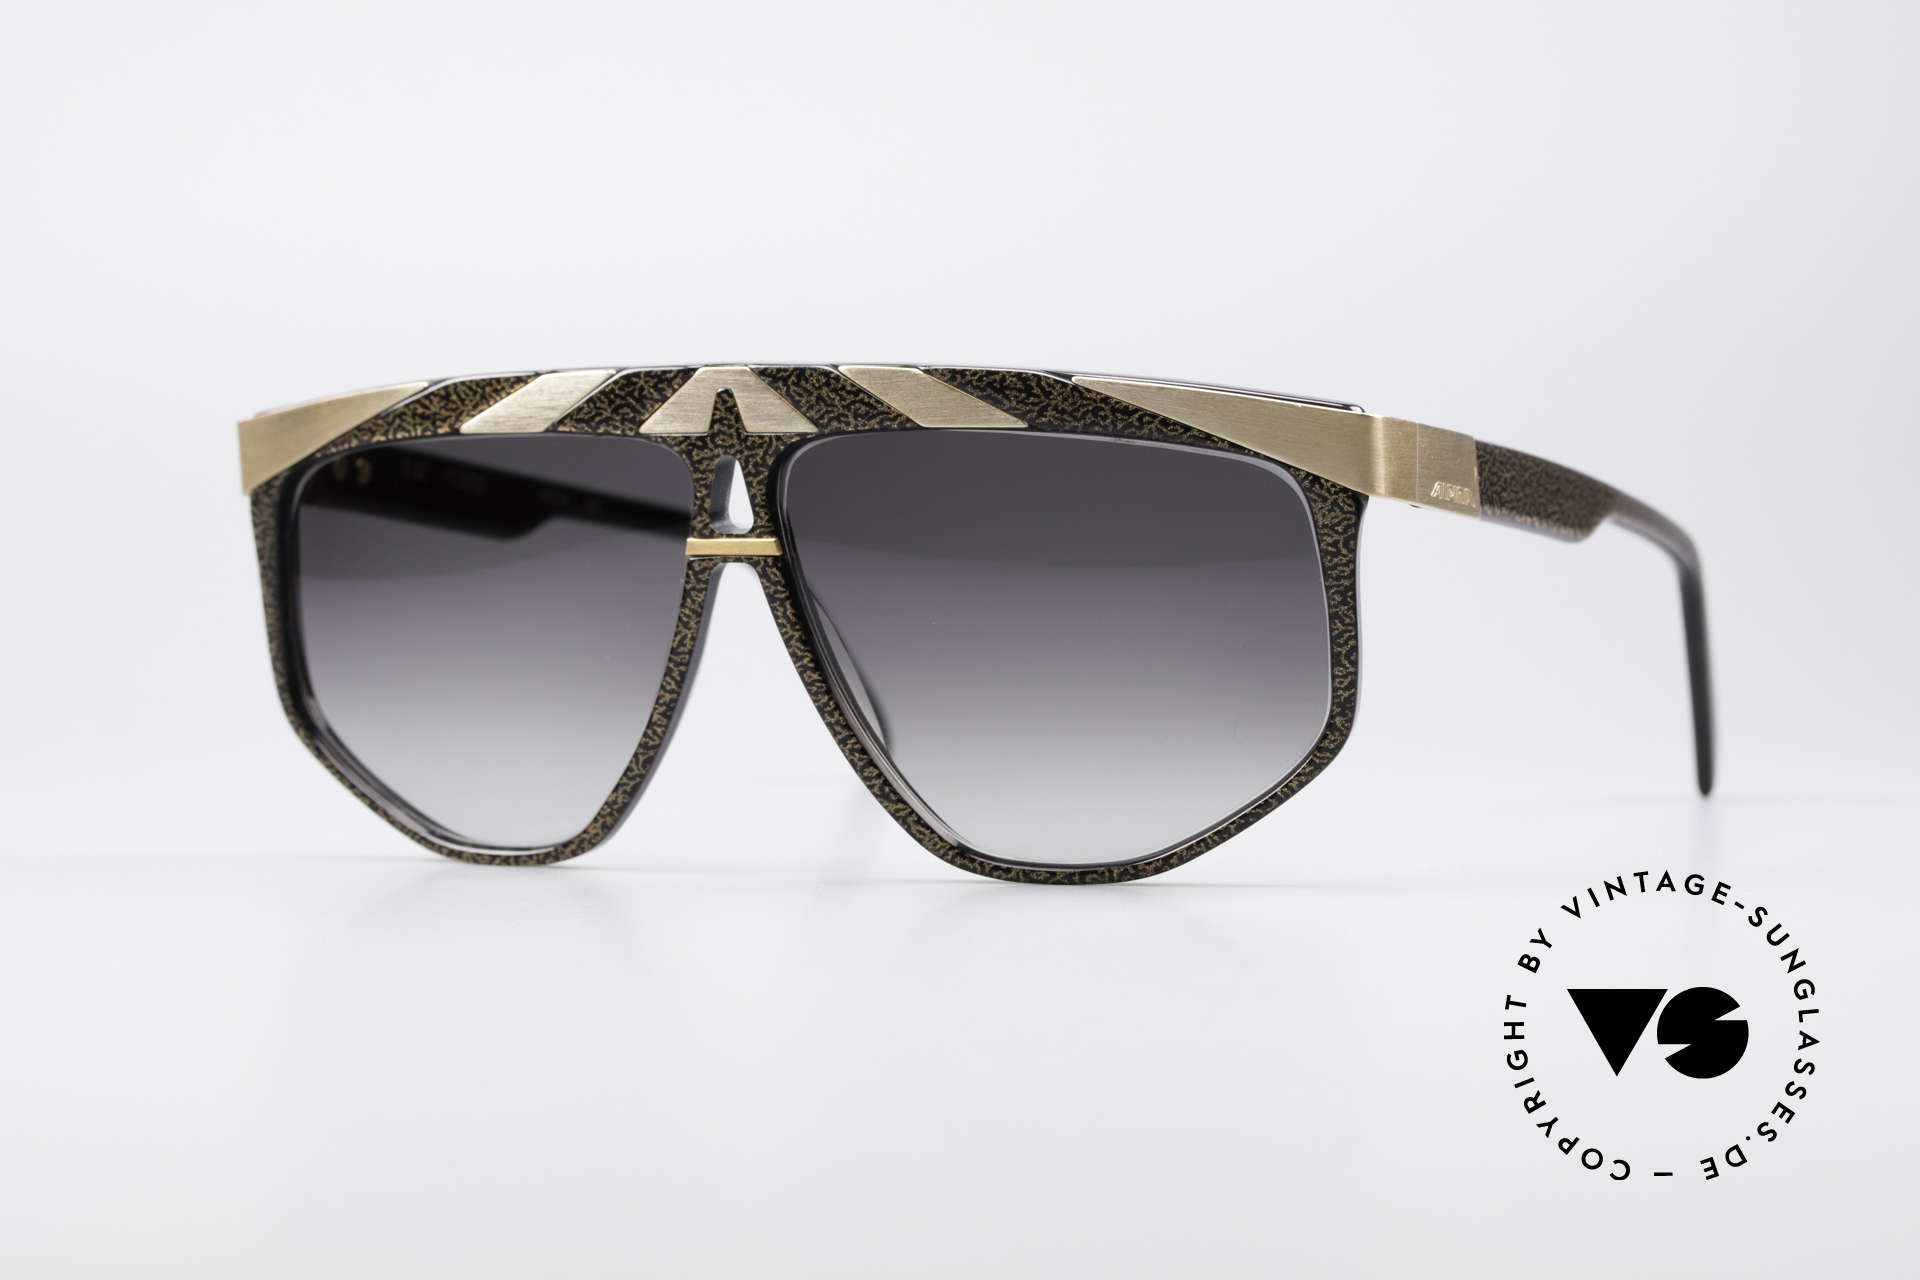 Alpina G82 No Retro Sunglasses Old 80's, vintage model from the 'Genesis Project' by Alpina, Made for Men and Women